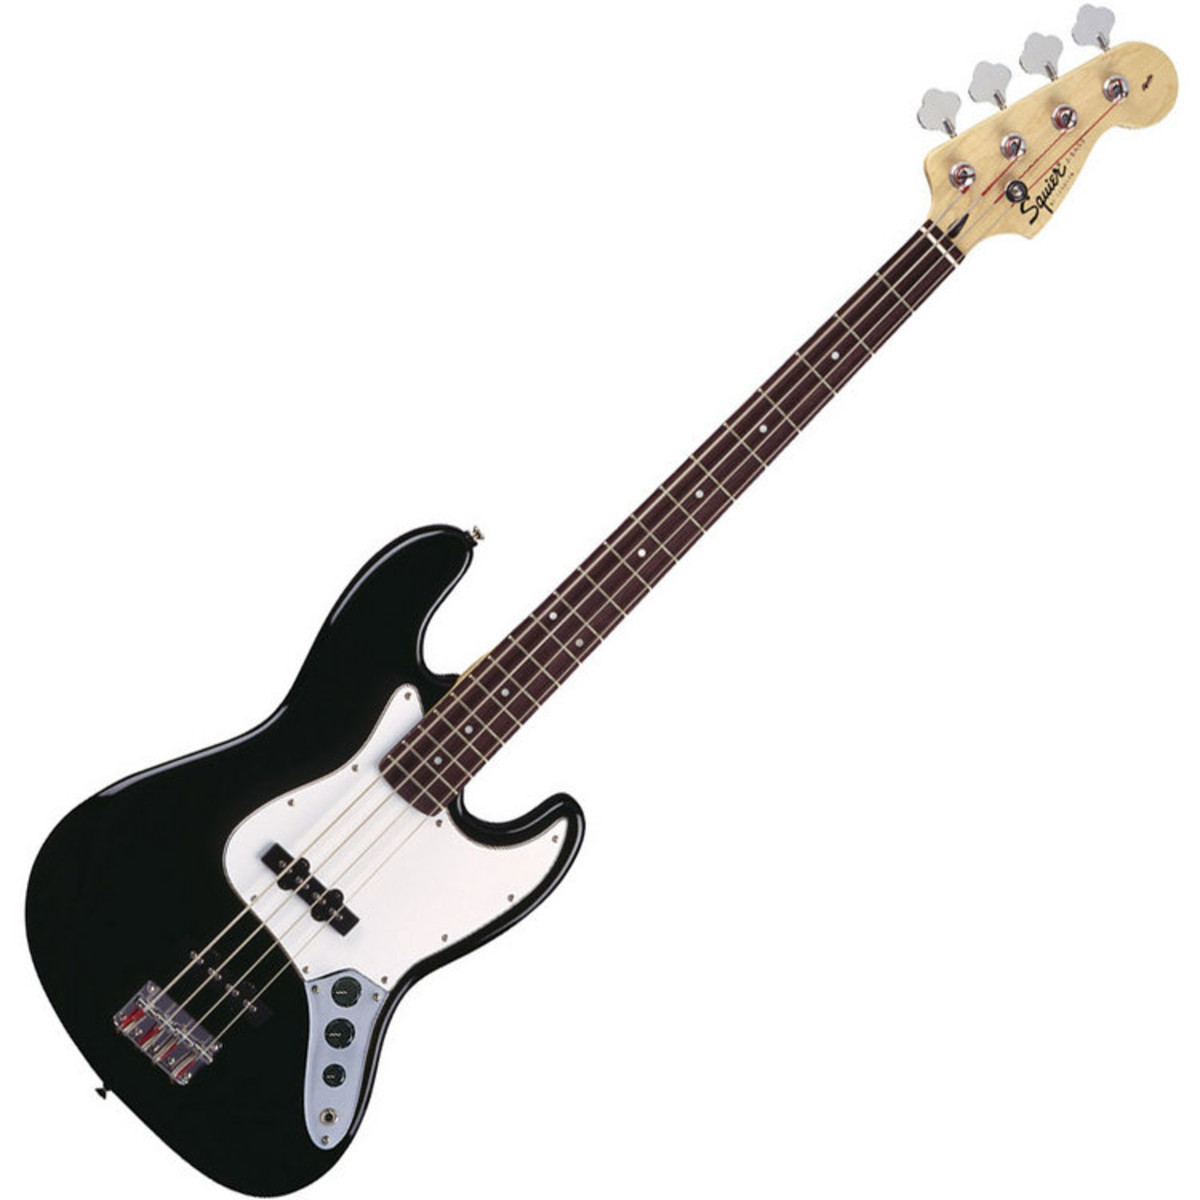 squier by fender affinity jazz bass black b stock at. Black Bedroom Furniture Sets. Home Design Ideas